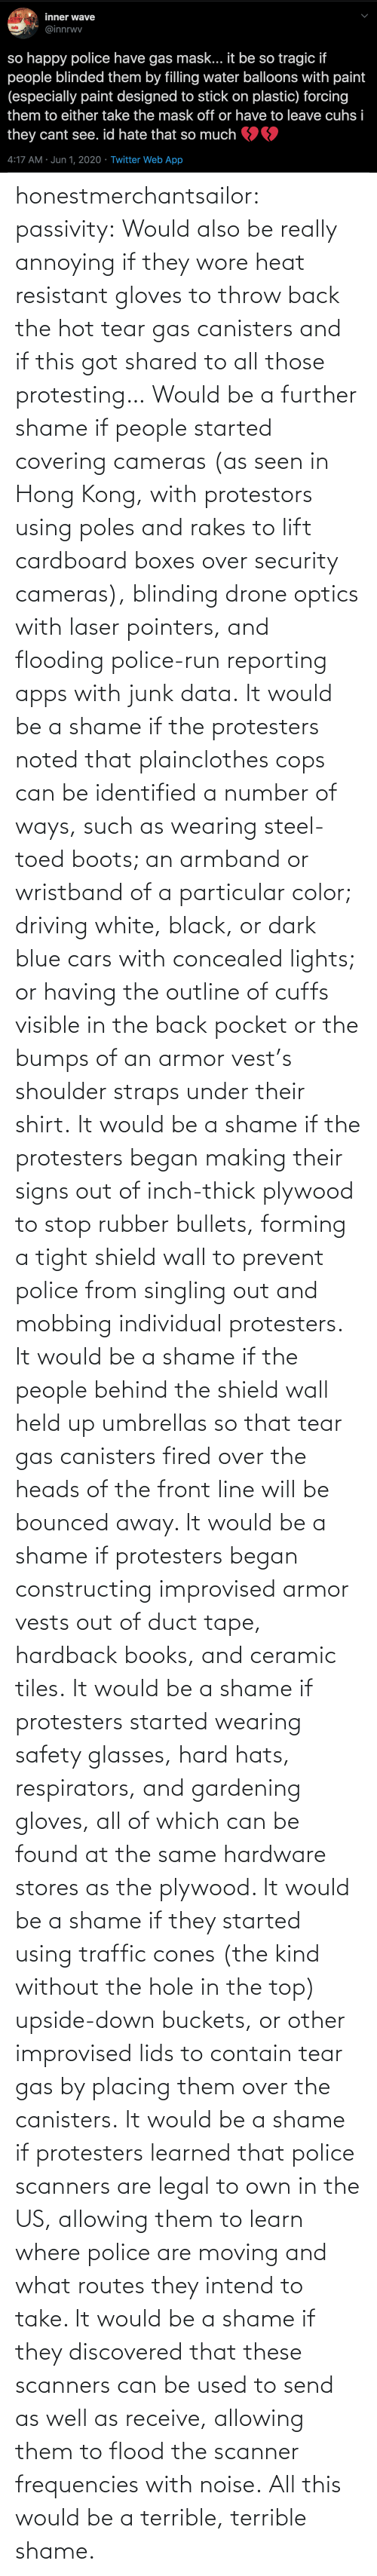 Glasses: honestmerchantsailor:  passivity: Would also be really annoying if they wore heat resistant gloves to throw back the hot tear gas canisters and if this got shared to all those protesting… Would be a further shame if people started covering cameras (as seen in Hong Kong, with protestors using poles and rakes to lift cardboard boxes over security cameras), blinding drone optics with laser pointers, and flooding police-run reporting apps with junk data. It would be a shame if the protesters noted that plainclothes cops can be identified a number of ways, such as wearing steel-toed boots; an armband or wristband of a particular color; driving white, black, or dark blue cars with concealed lights; or having the outline of cuffs visible in the back pocket or the bumps of an armor vest's shoulder straps under their shirt. It would be a shame if the protesters began making their signs out of inch-thick plywood to stop rubber bullets, forming a tight shield wall to prevent police from singling out and mobbing individual protesters. It would be a shame if the people behind the shield wall held up umbrellas so that tear gas canisters fired over the heads of the front line will be bounced away. It would be a shame if protesters began constructing improvised armor vests out of duct tape, hardback books, and ceramic tiles. It would be a shame if protesters started wearing safety glasses, hard hats, respirators, and gardening gloves, all of which can be found at the same hardware stores as the plywood. It would be a shame if they started using traffic cones (the kind without the hole in the top) upside-down buckets, or other improvised lids to contain tear gas by placing them over the canisters. It would be a shame if protesters learned that police scanners are legal to own in the US, allowing them to learn where police are moving and what routes they intend to take. It would be a shame if they discovered that these scanners can be used to send as well as receive, allowing them to flood the scanner frequencies with noise. All this would be a terrible, terrible shame.